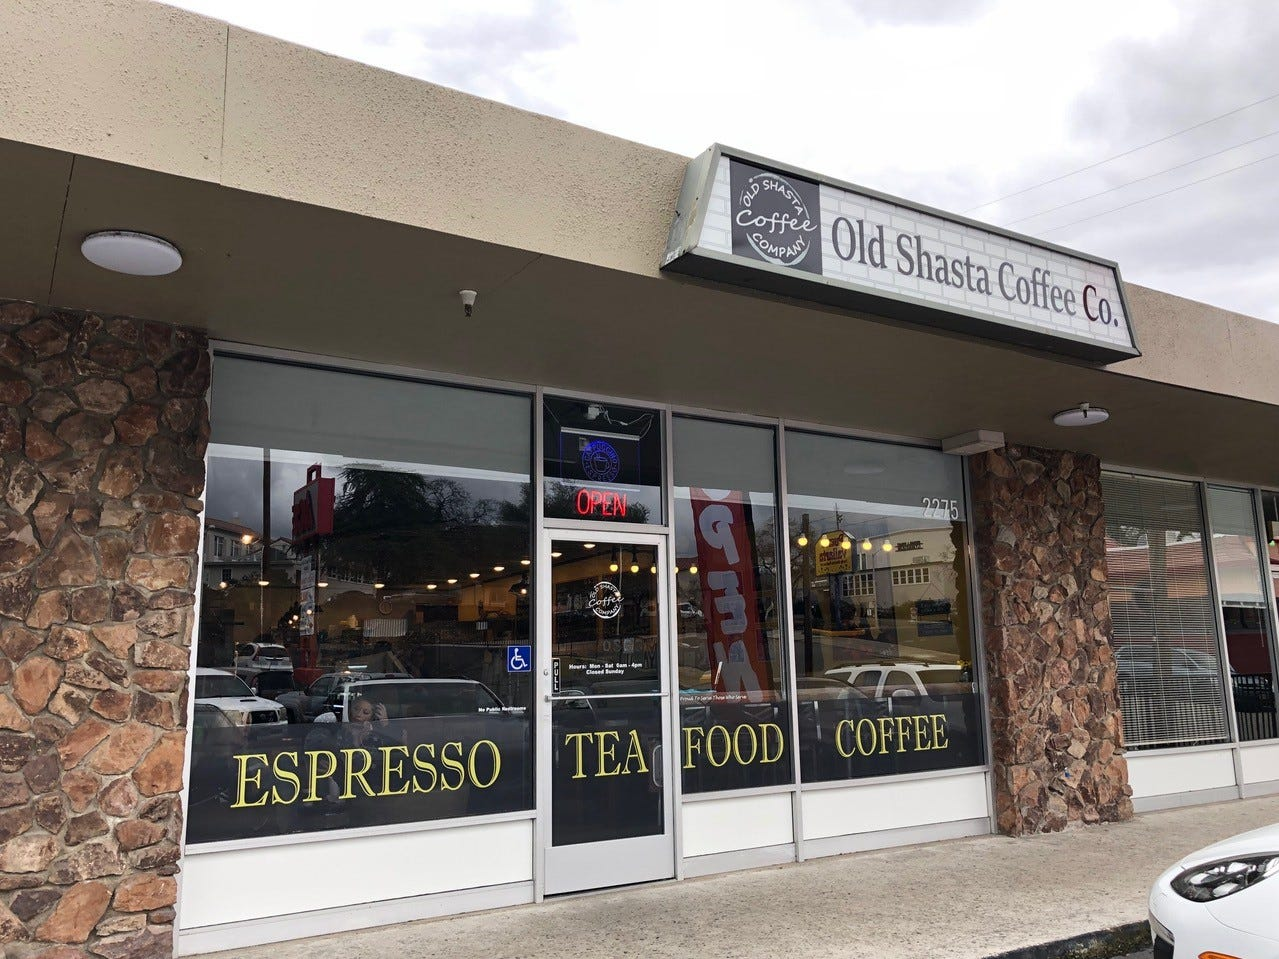 The entrance to the new Old Shasta Coffee Company across from U-Prep in the Ace Hardware shopping center in west Redding.